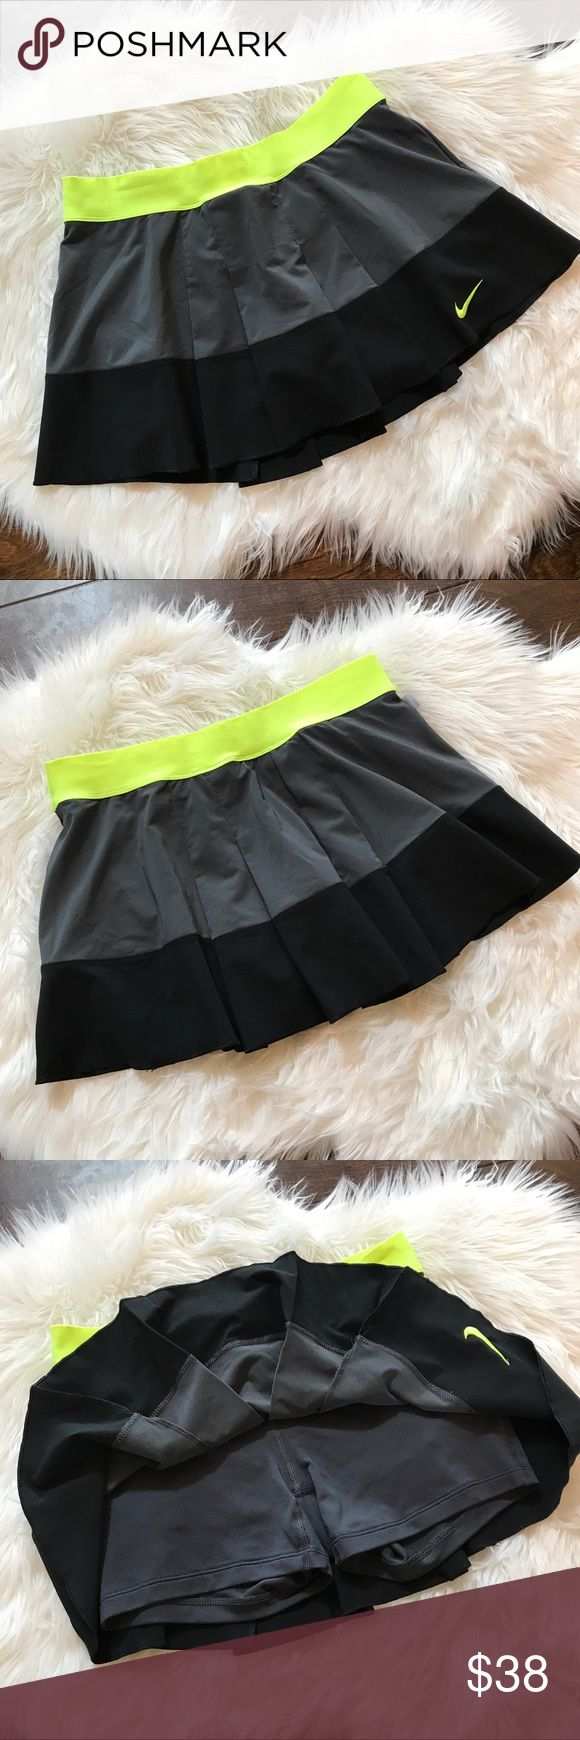 Nike Skirt Nike Skirt. Size M. Very excellent used condition ! No trades. If you like something, please use the offer button, I may not respond to offers in comments. I play by Posh's rules. Bundle for UP TO a 25% discount as well as saving on your shipping! Play nice and happy shopping! Nike Skirts Mini